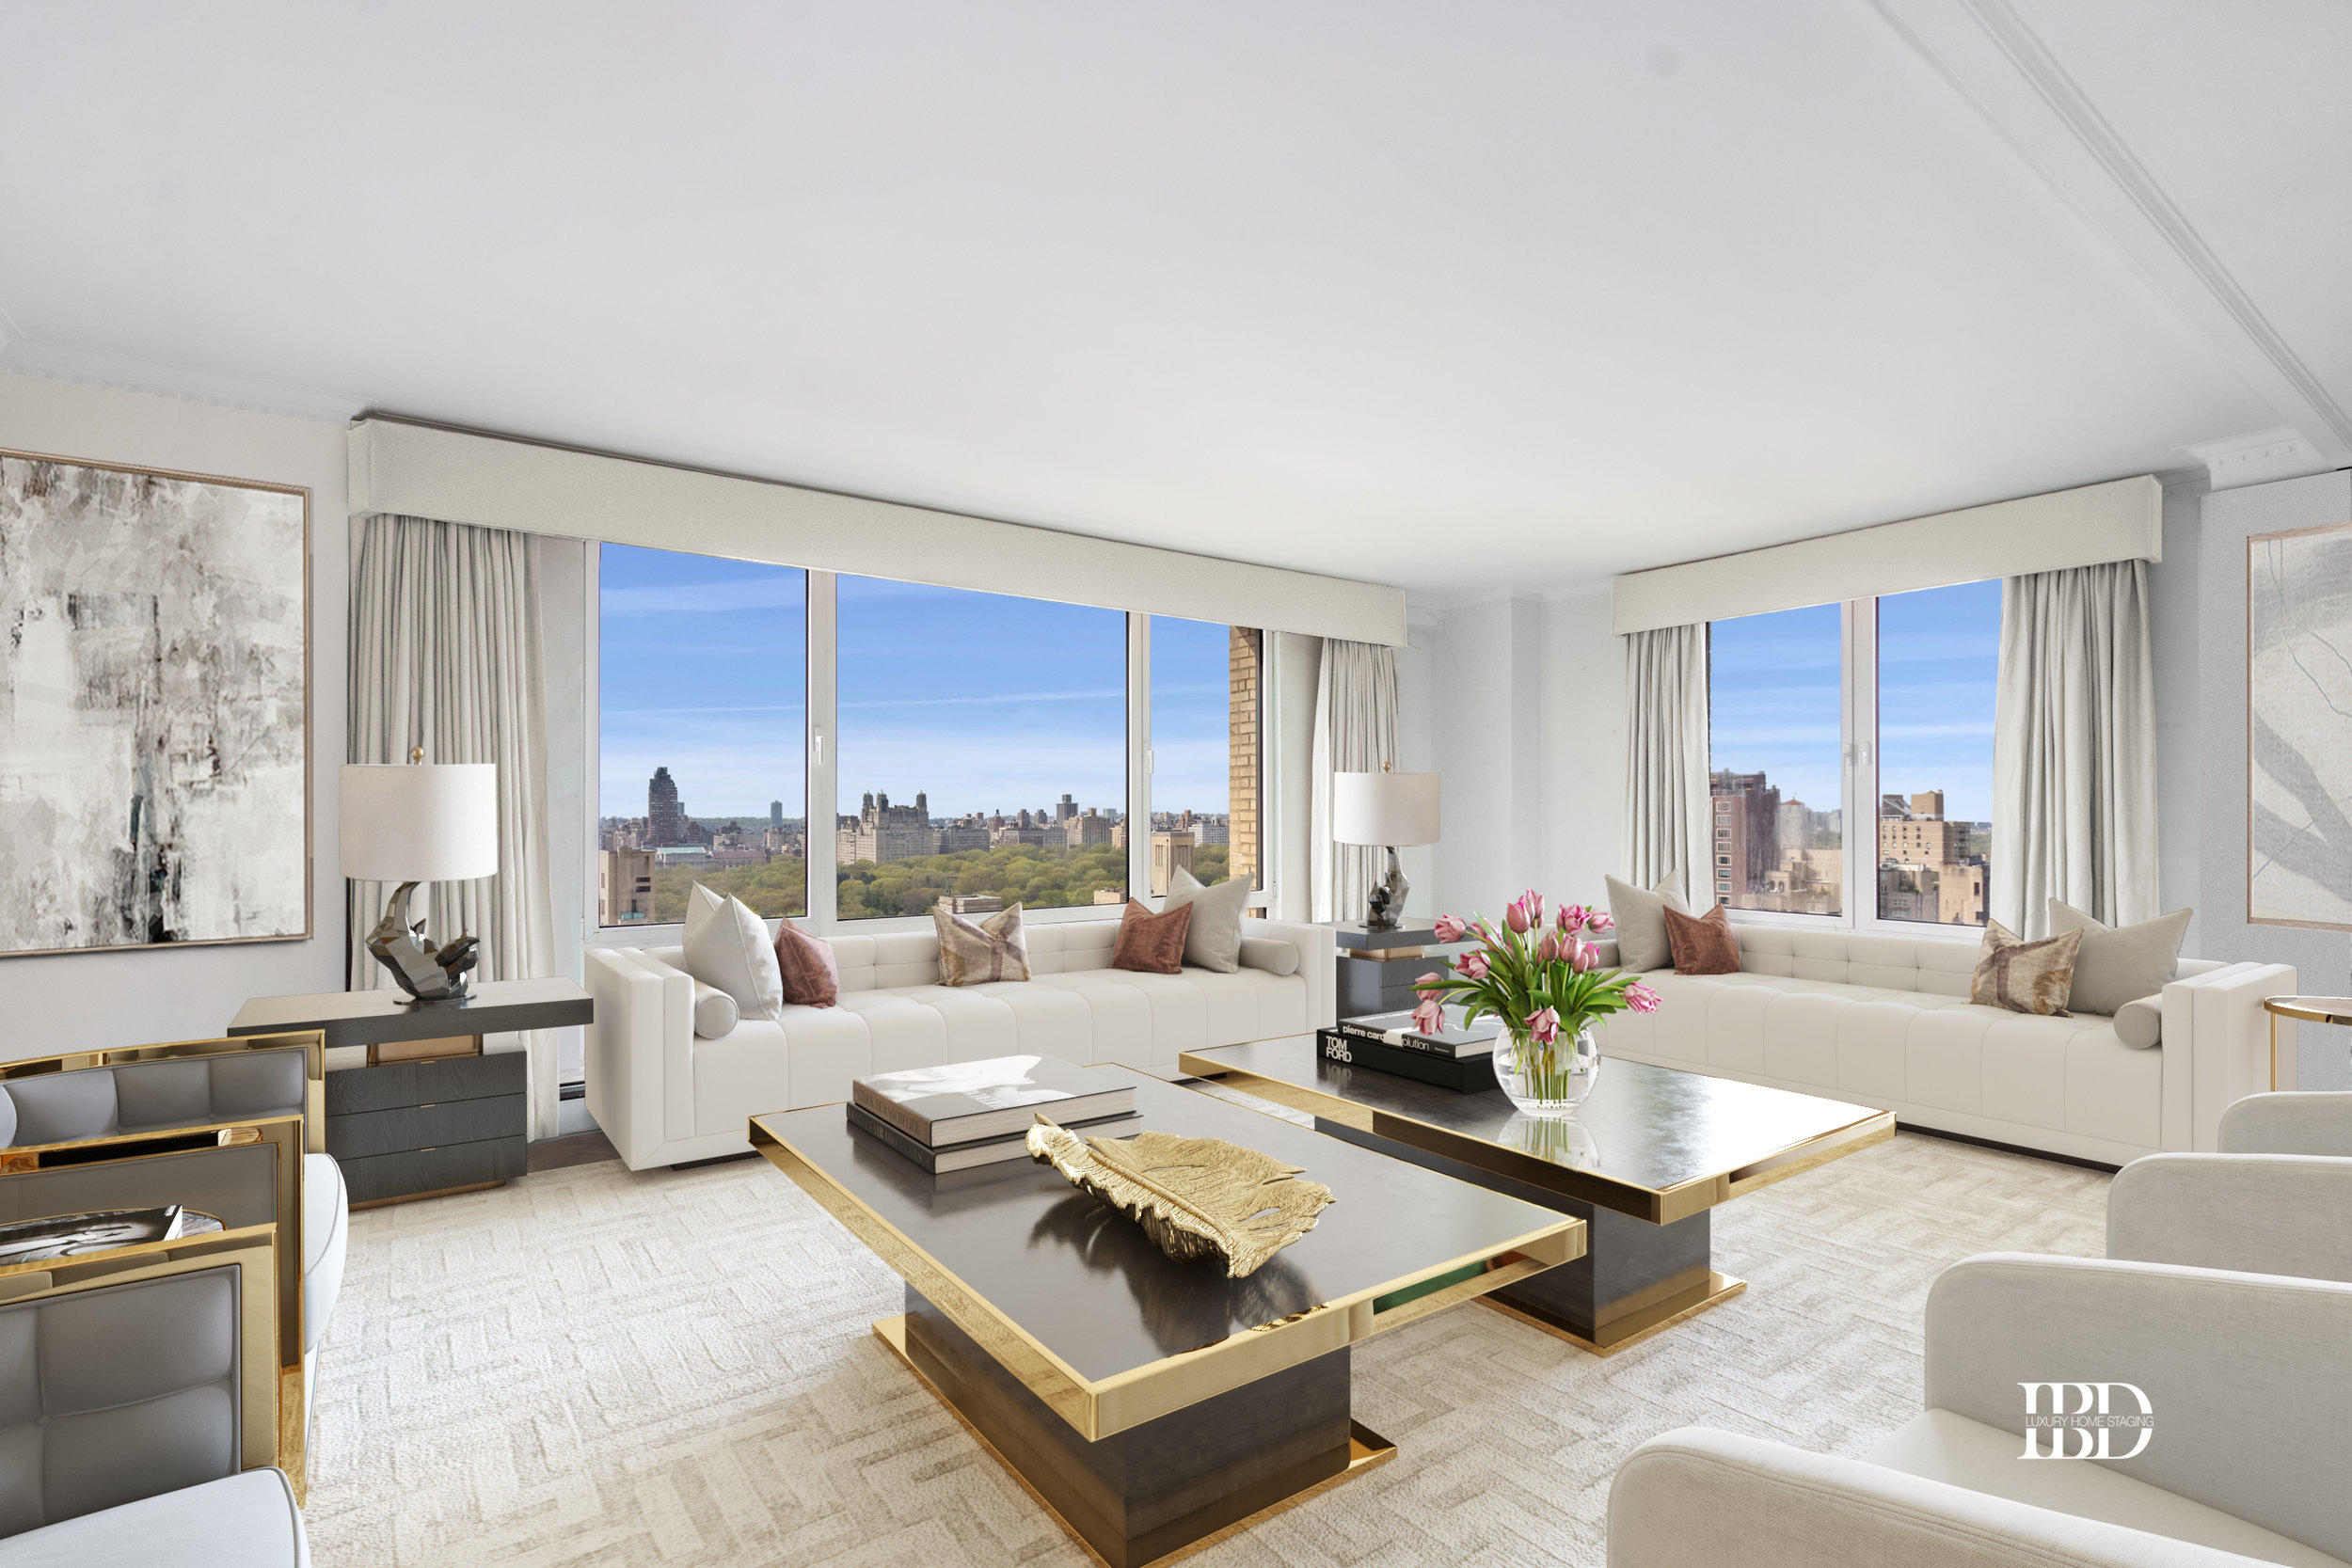 Iconic Carlyle Tower35 East 76th St. 25TH FLOOR, NEW YORK - $14,000,000